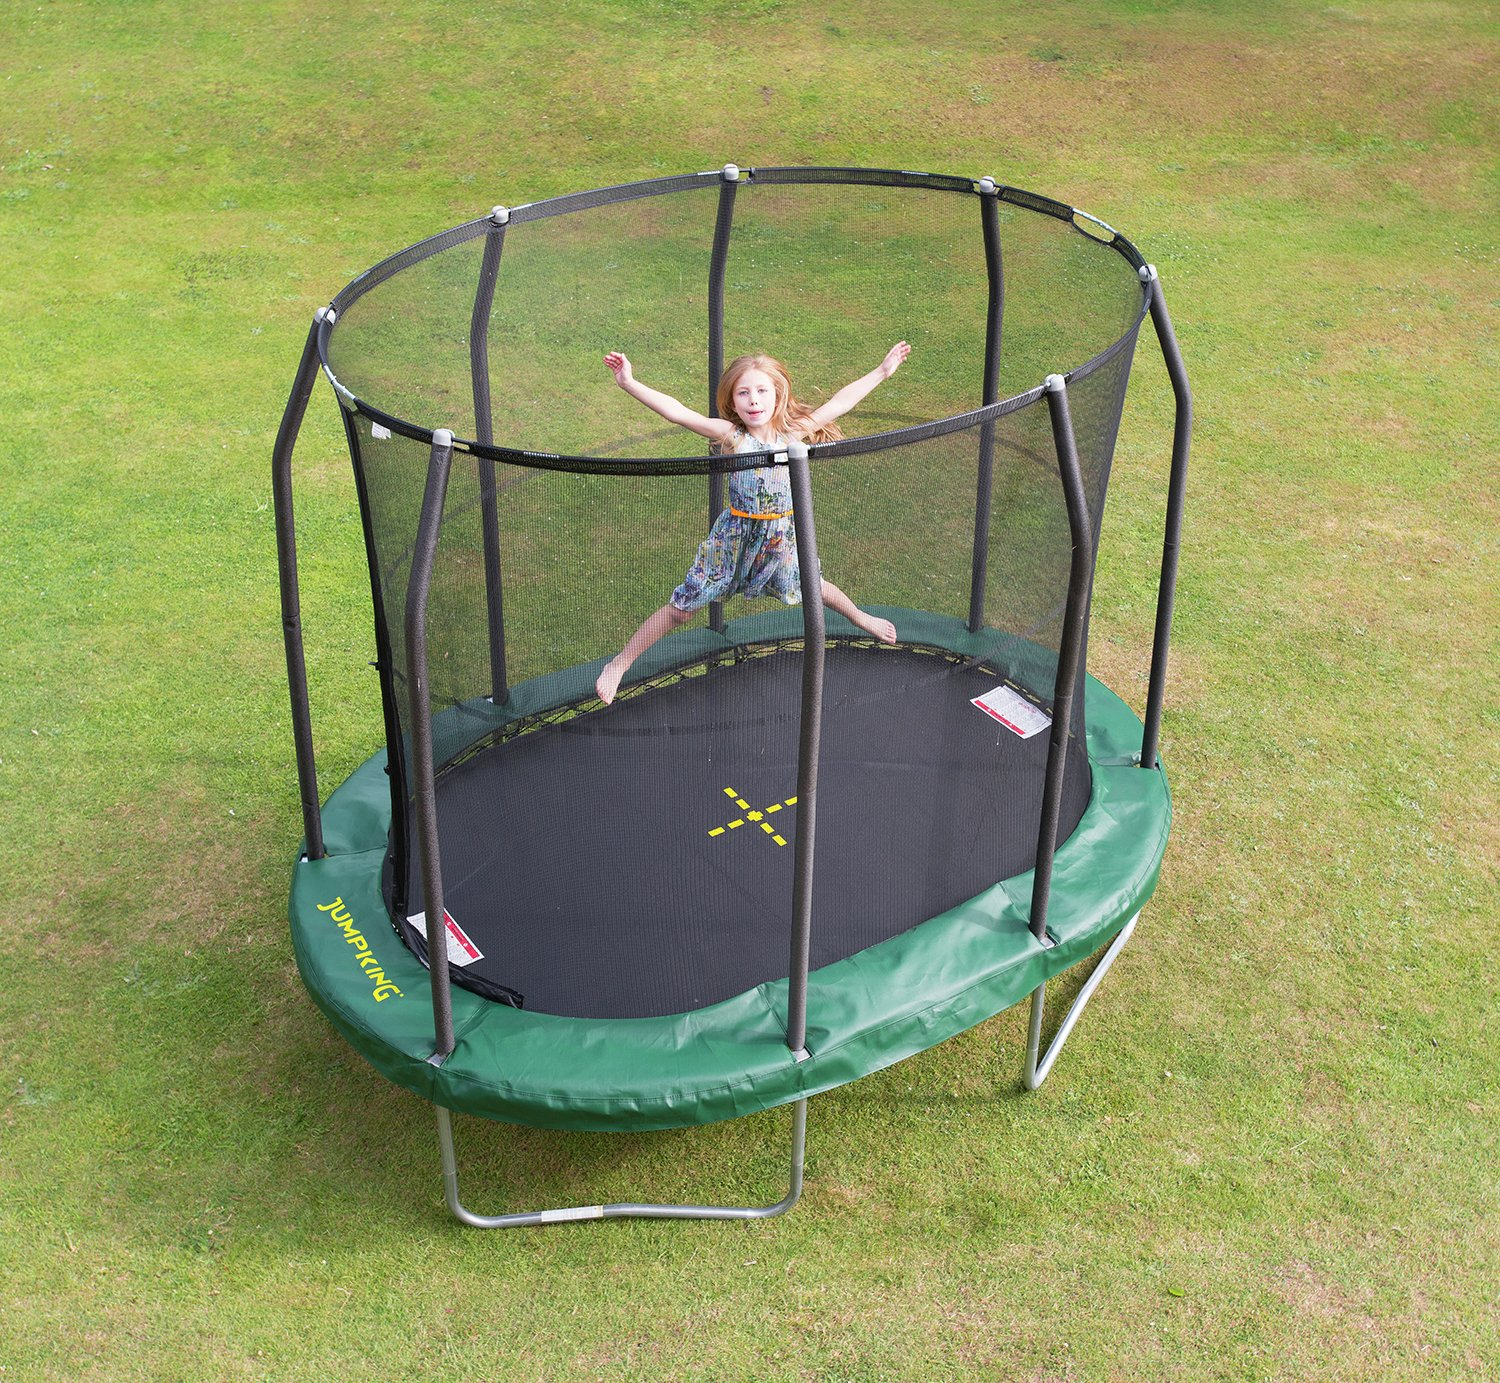 Buy Jumpking 7Ft X 10Ft Premium Oval Trampoline At Argos.Co.Uk